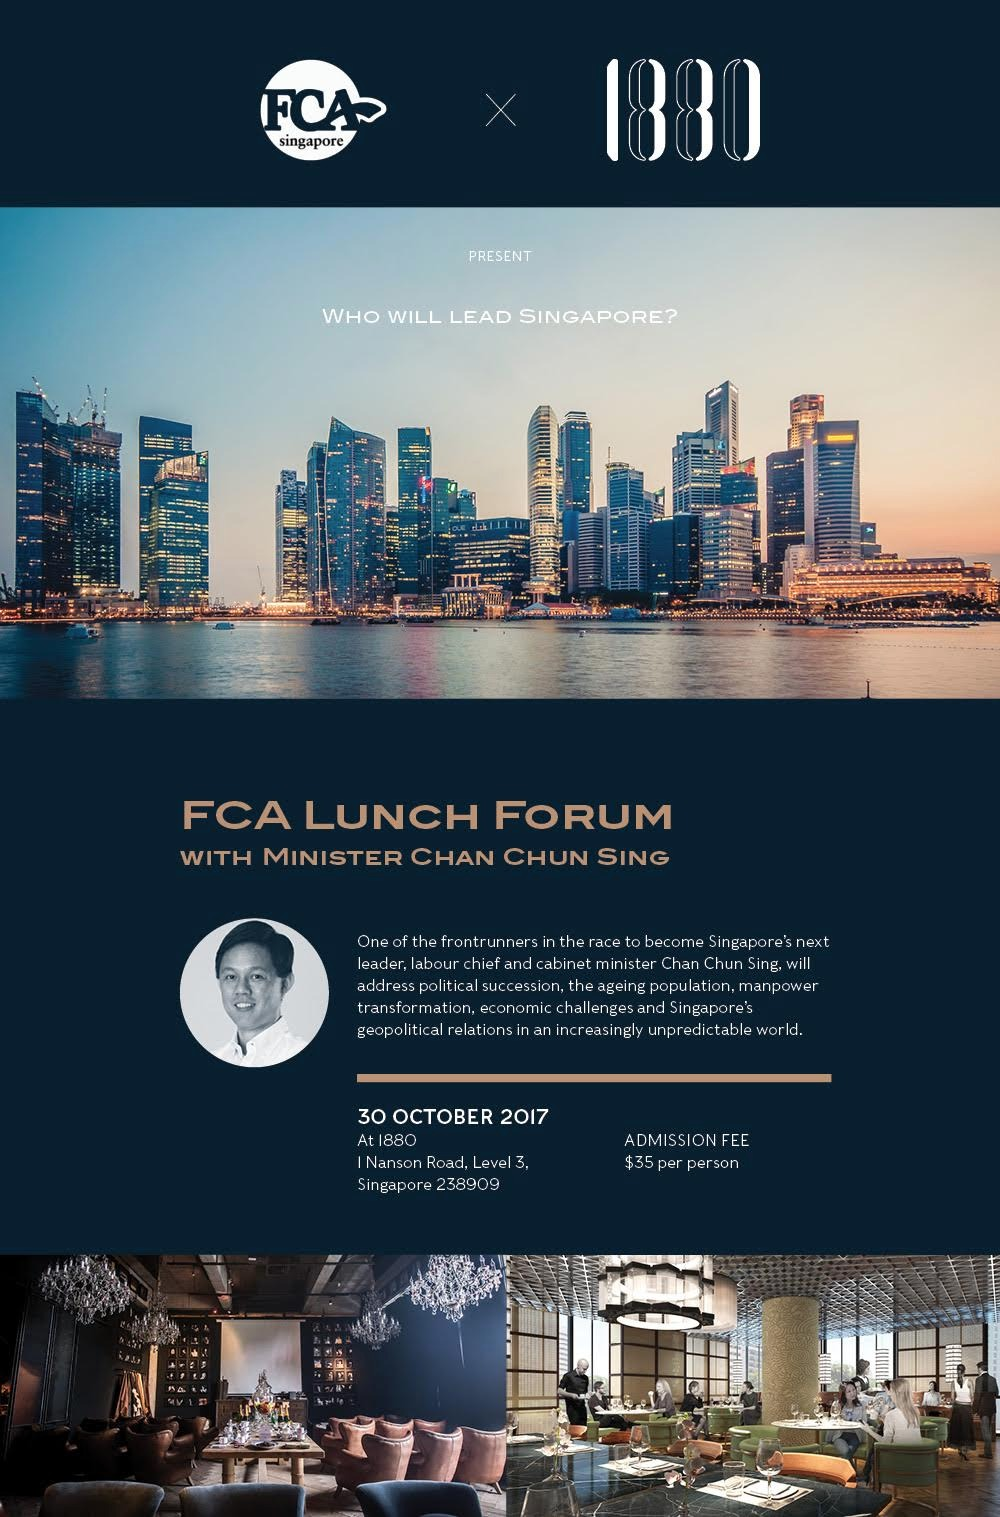 REGISTRATION CLOSED: FCA lunch forum with Minister Chan Chun Sing